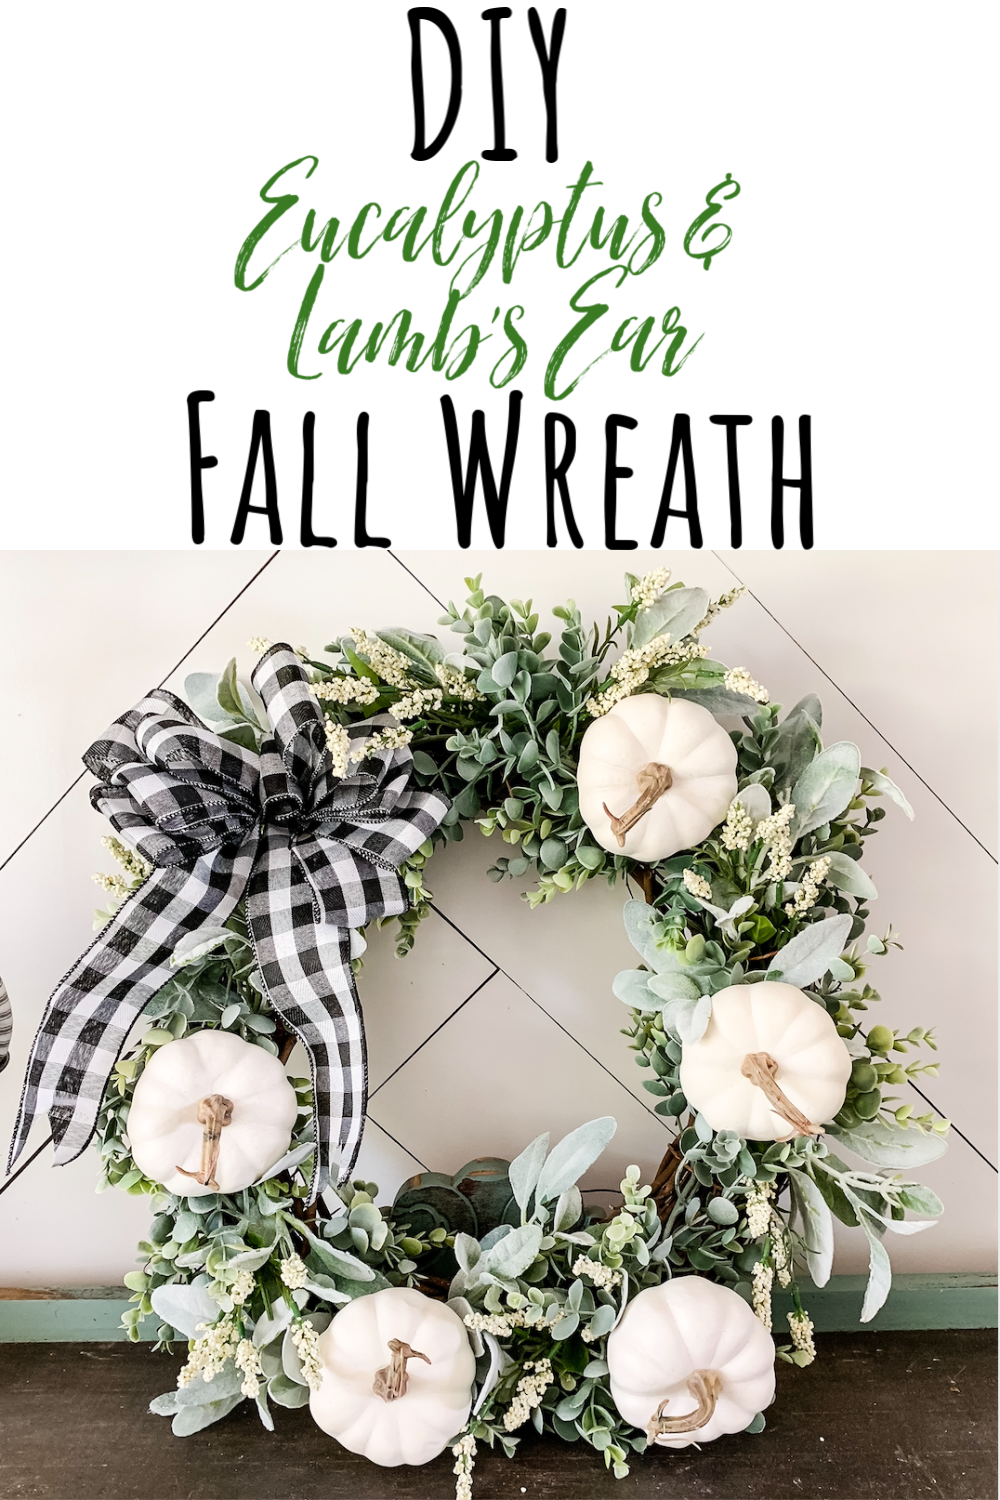 Remington Ranch Farmhouse Easy Diy Fall Wreath Diy